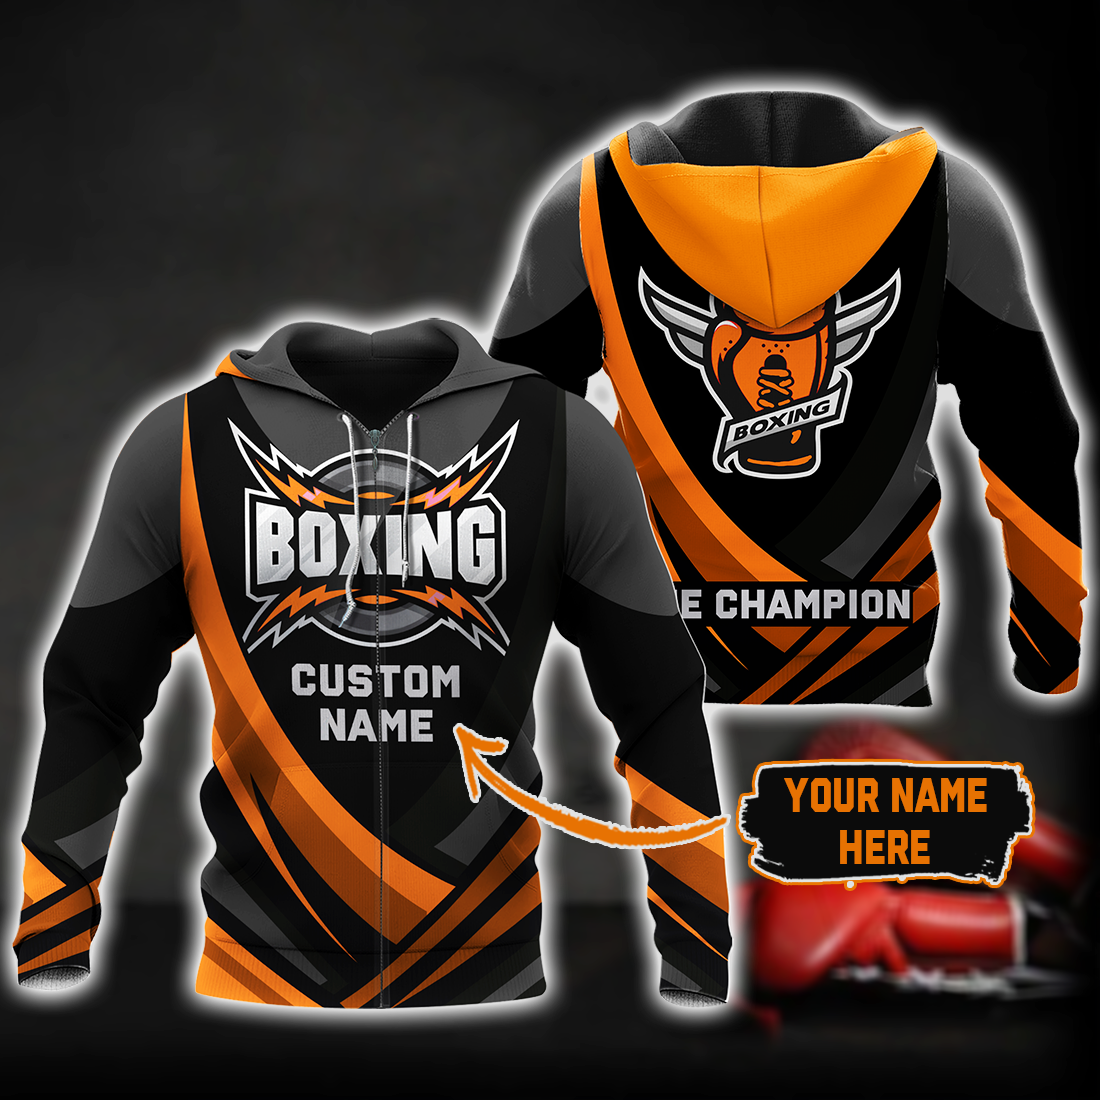 Boxing King Champion 3D Orange Customize Name All Over Print